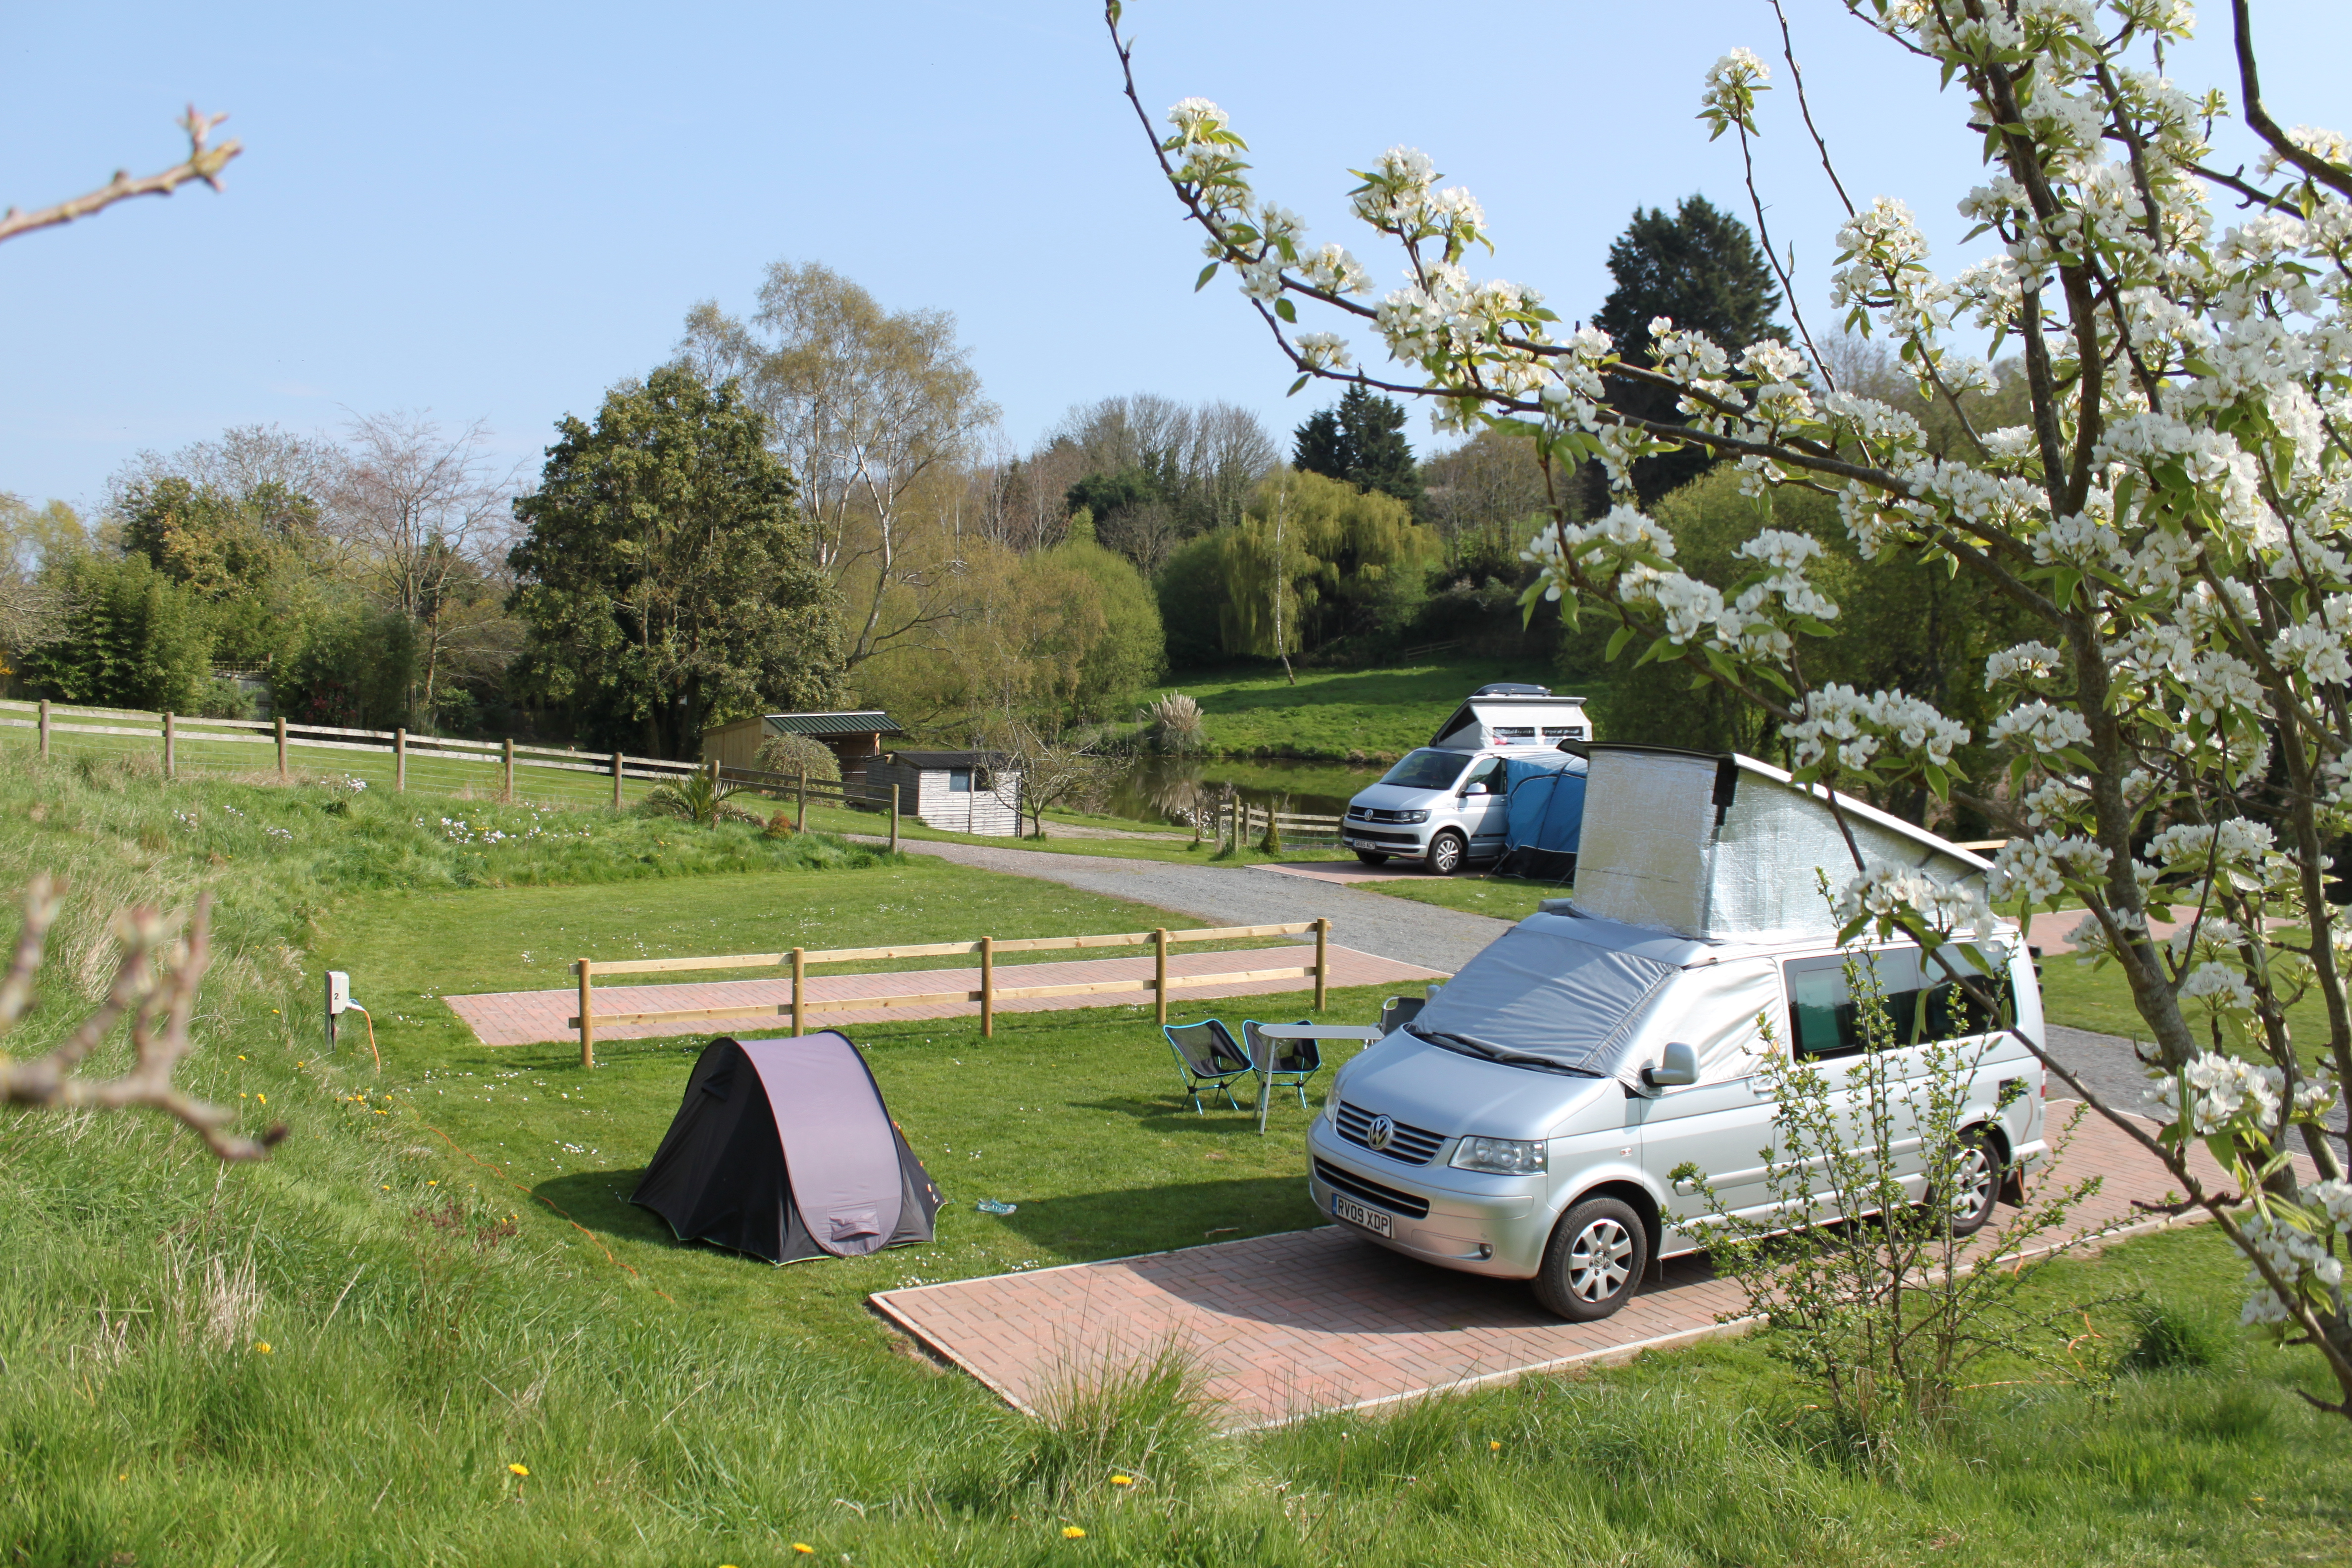 hardstanding hard standing motorhomes campervans campers caravans touring south devon dawlish starcross powderham kenton